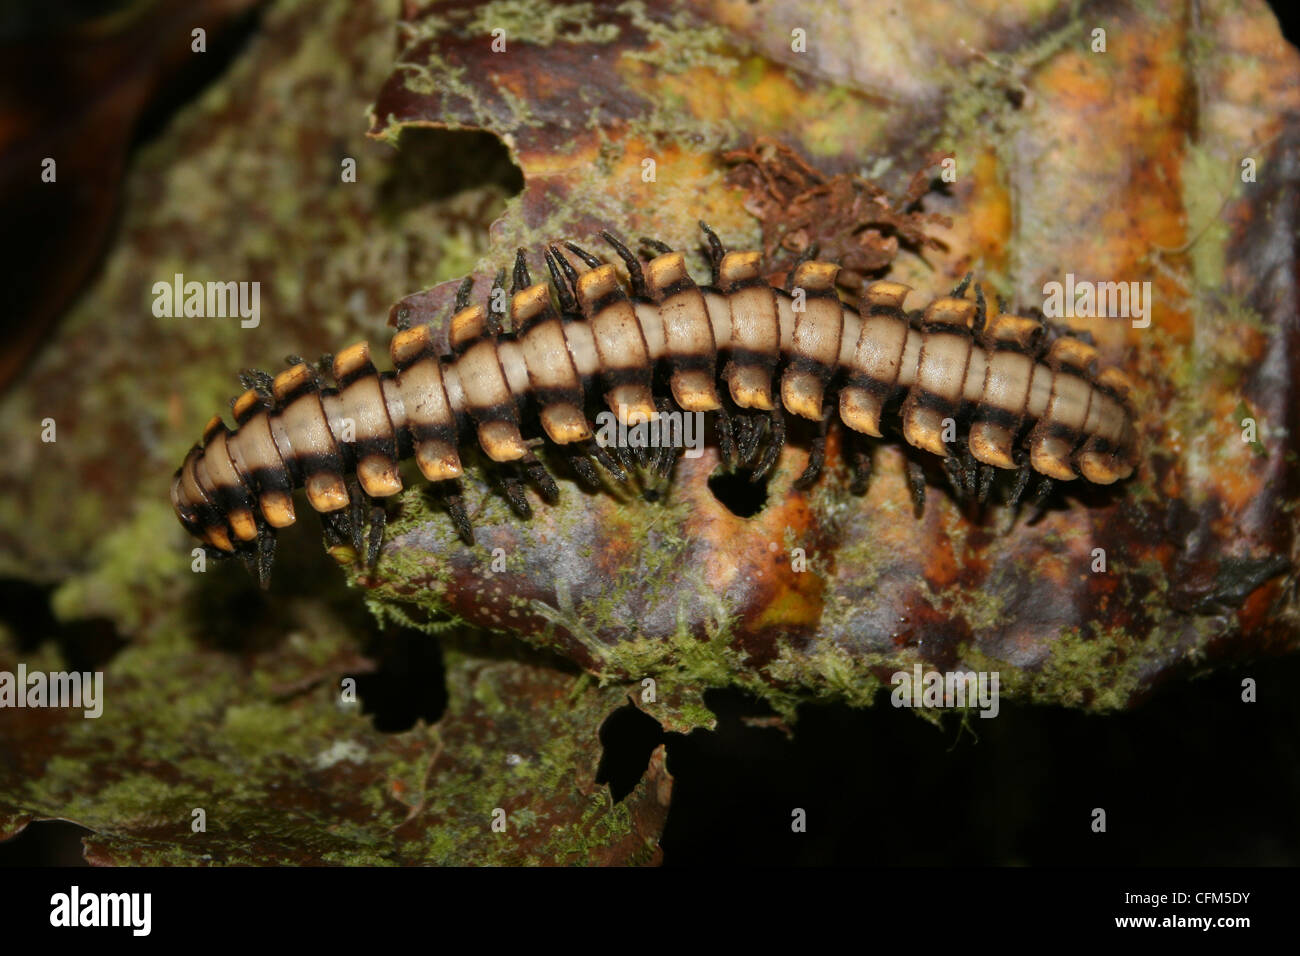 Yellow-banded Millipede - Stock Image